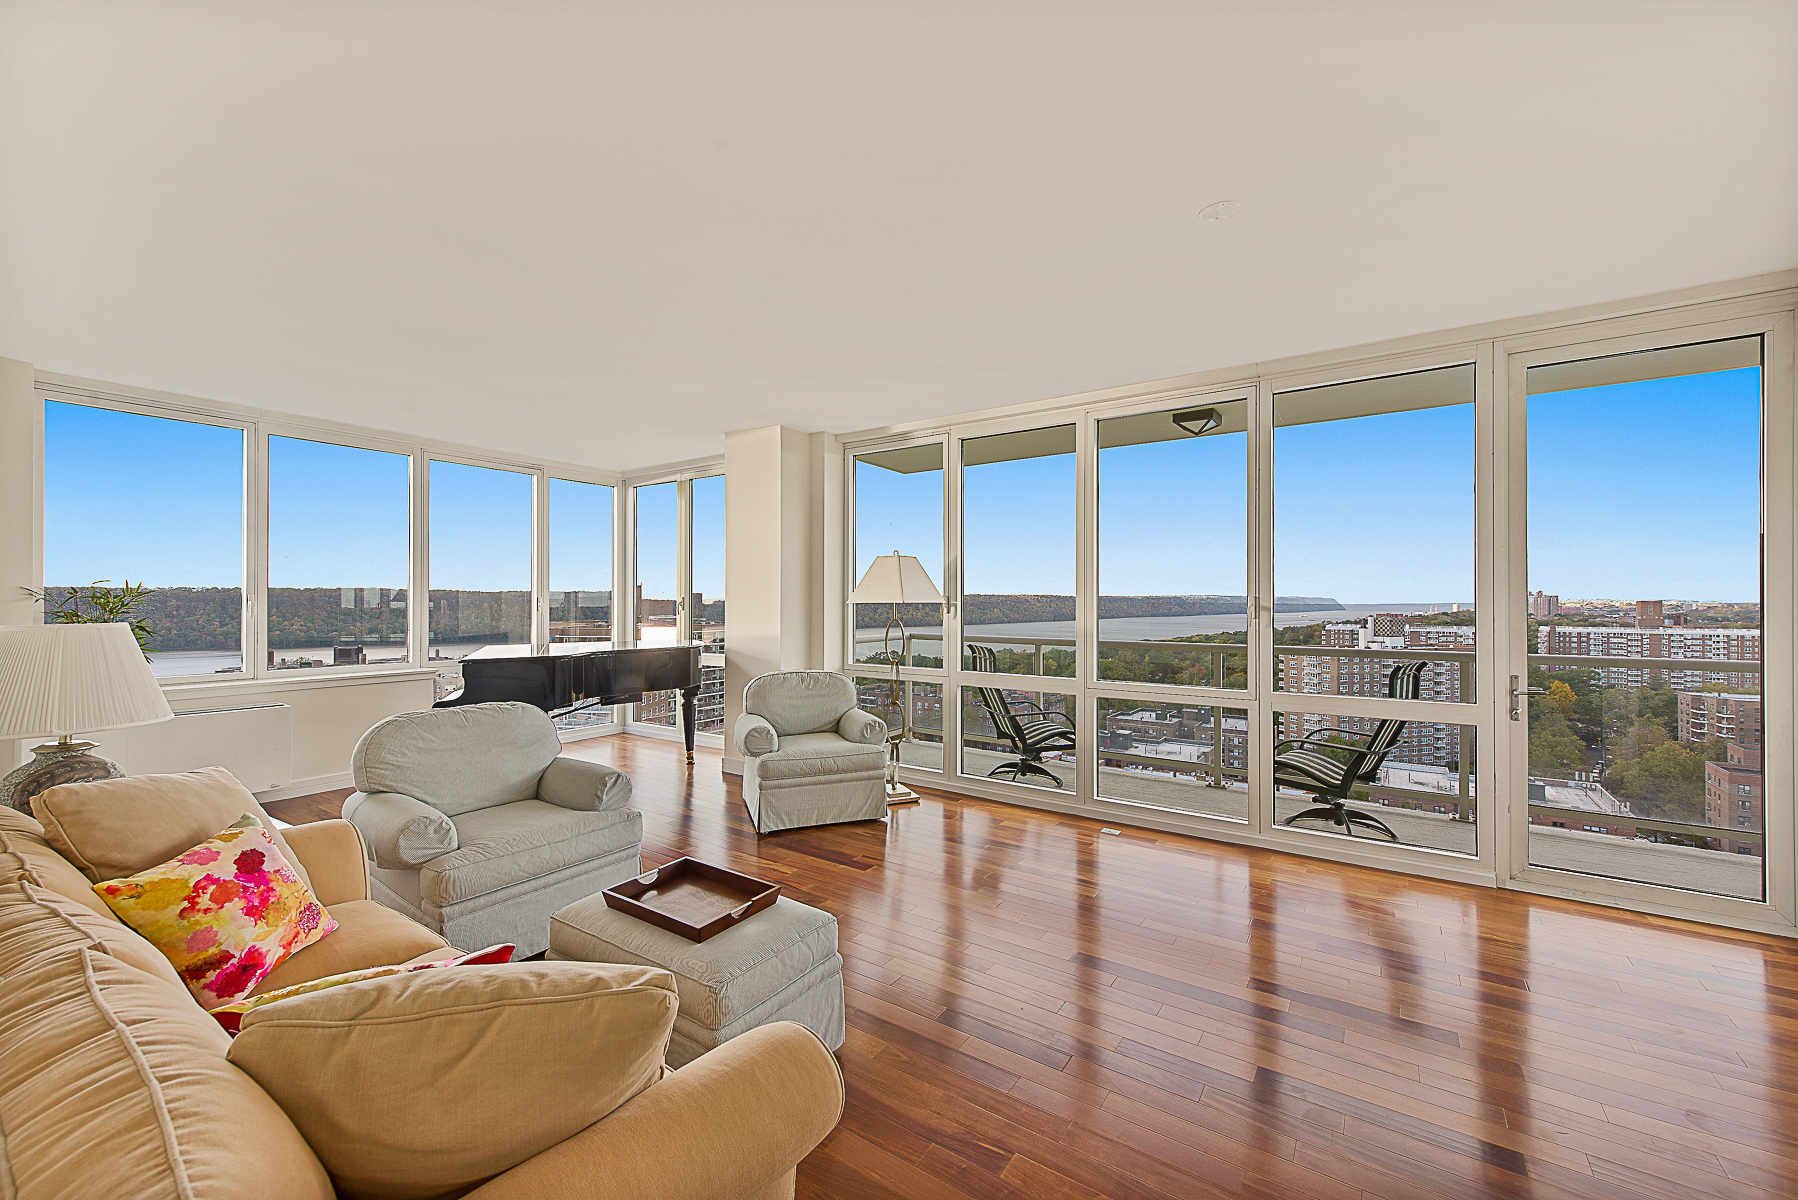 Condominium for Sale at BEST 3 BR CONDO WITH RIVER VIEWS 640 West 237 Street 19C Riverdale, New York, 10463 United States